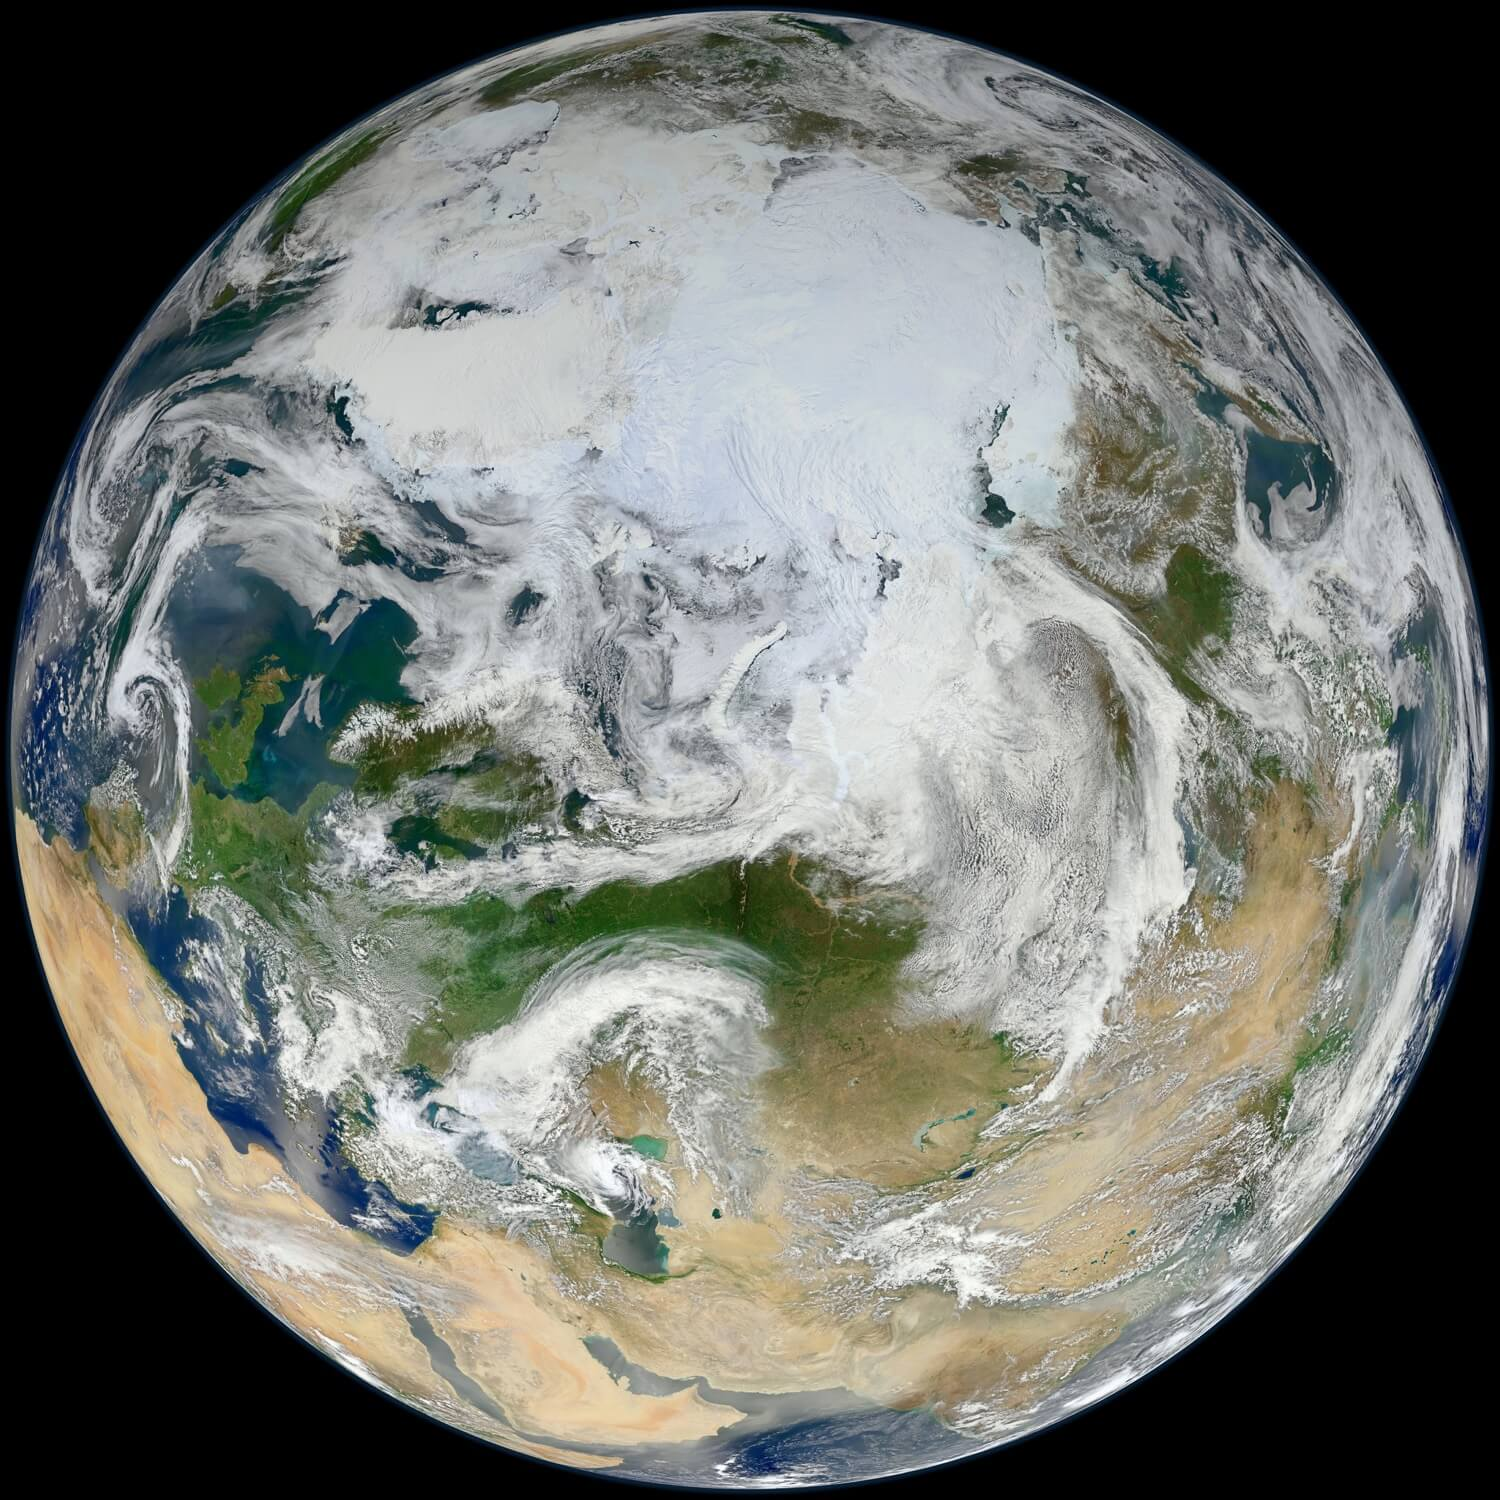 Earth - Blue Marble 2012 - 'White Marble' Arctic View